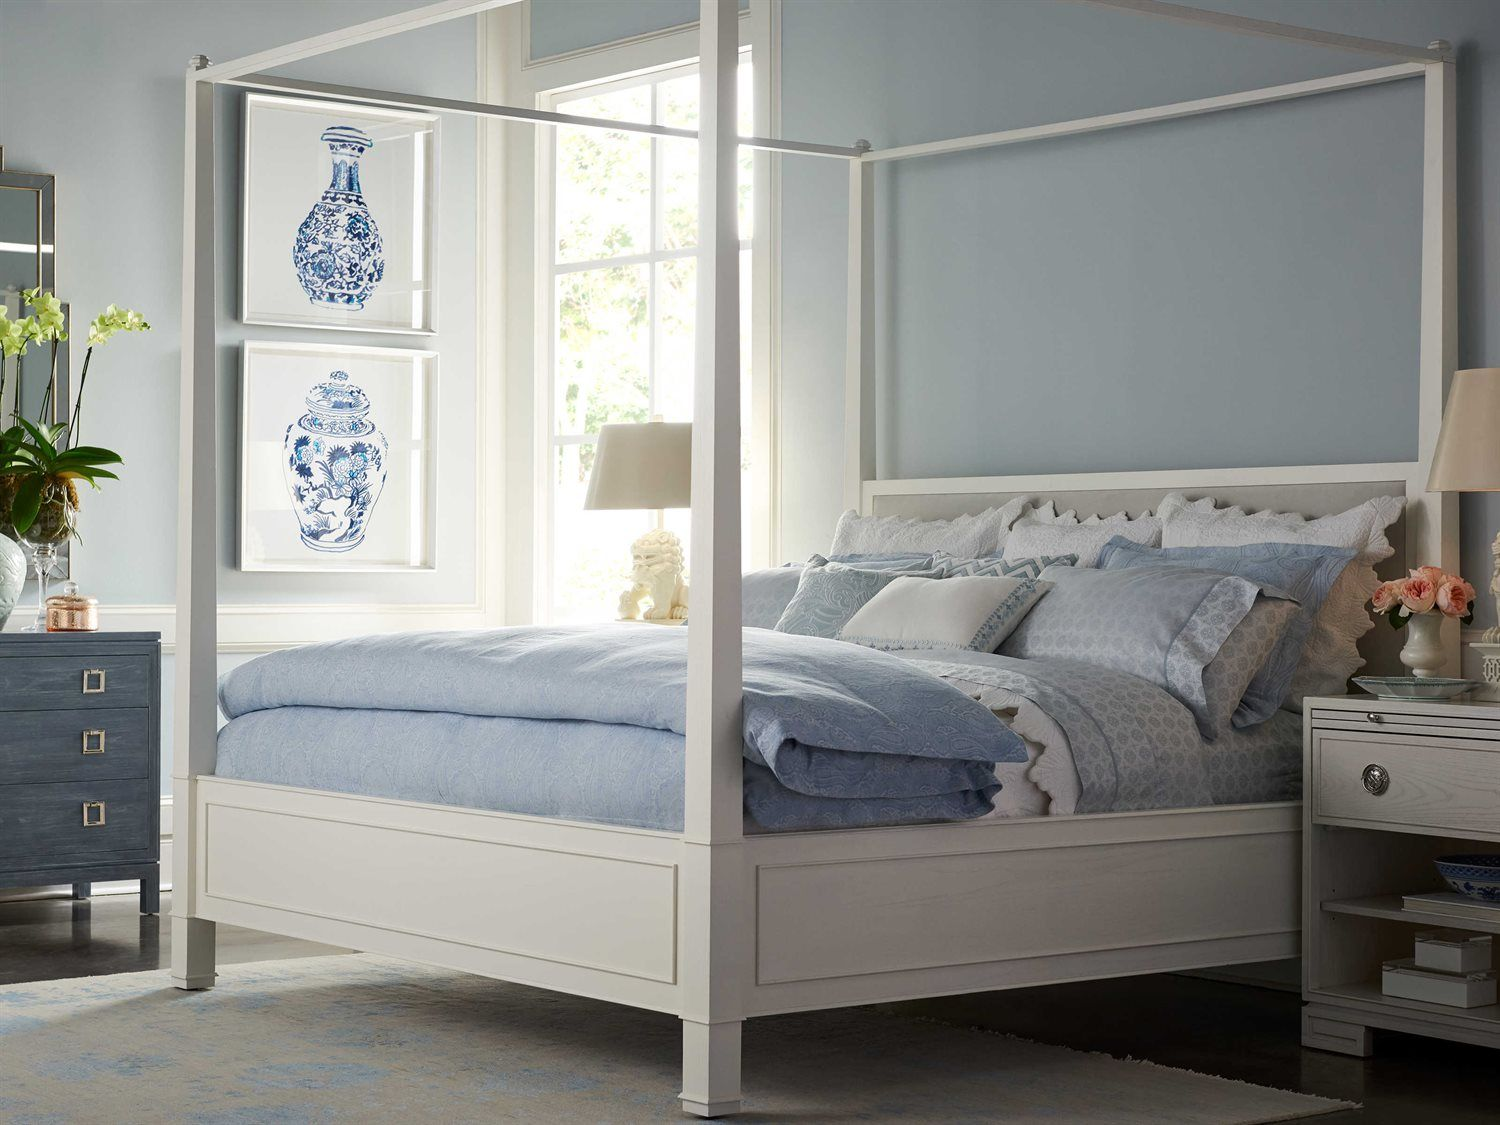 Lillian August King Poster Bed in 2020 King poster bed